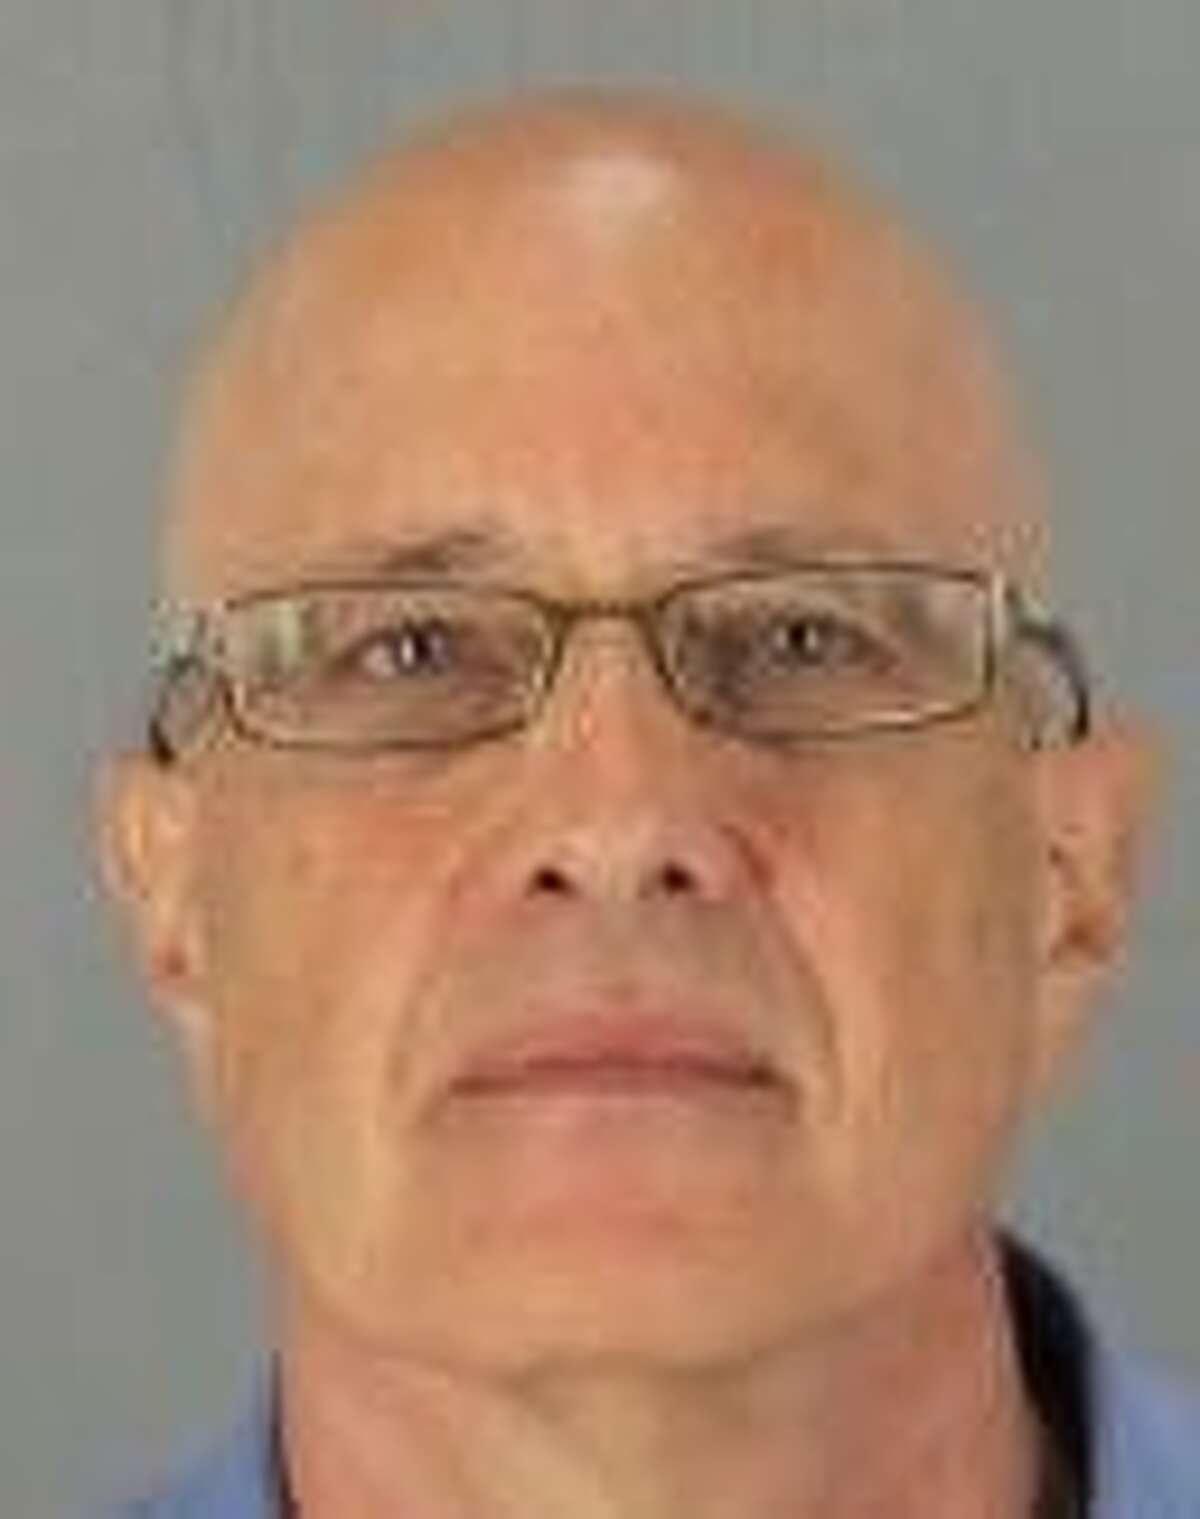 Randall Neustaedter, 65, was arrested Monday, July 13, on suspicion of sexually assaulting one of his patients during a massage at an Oriental medicine clinic in San Mateo County.